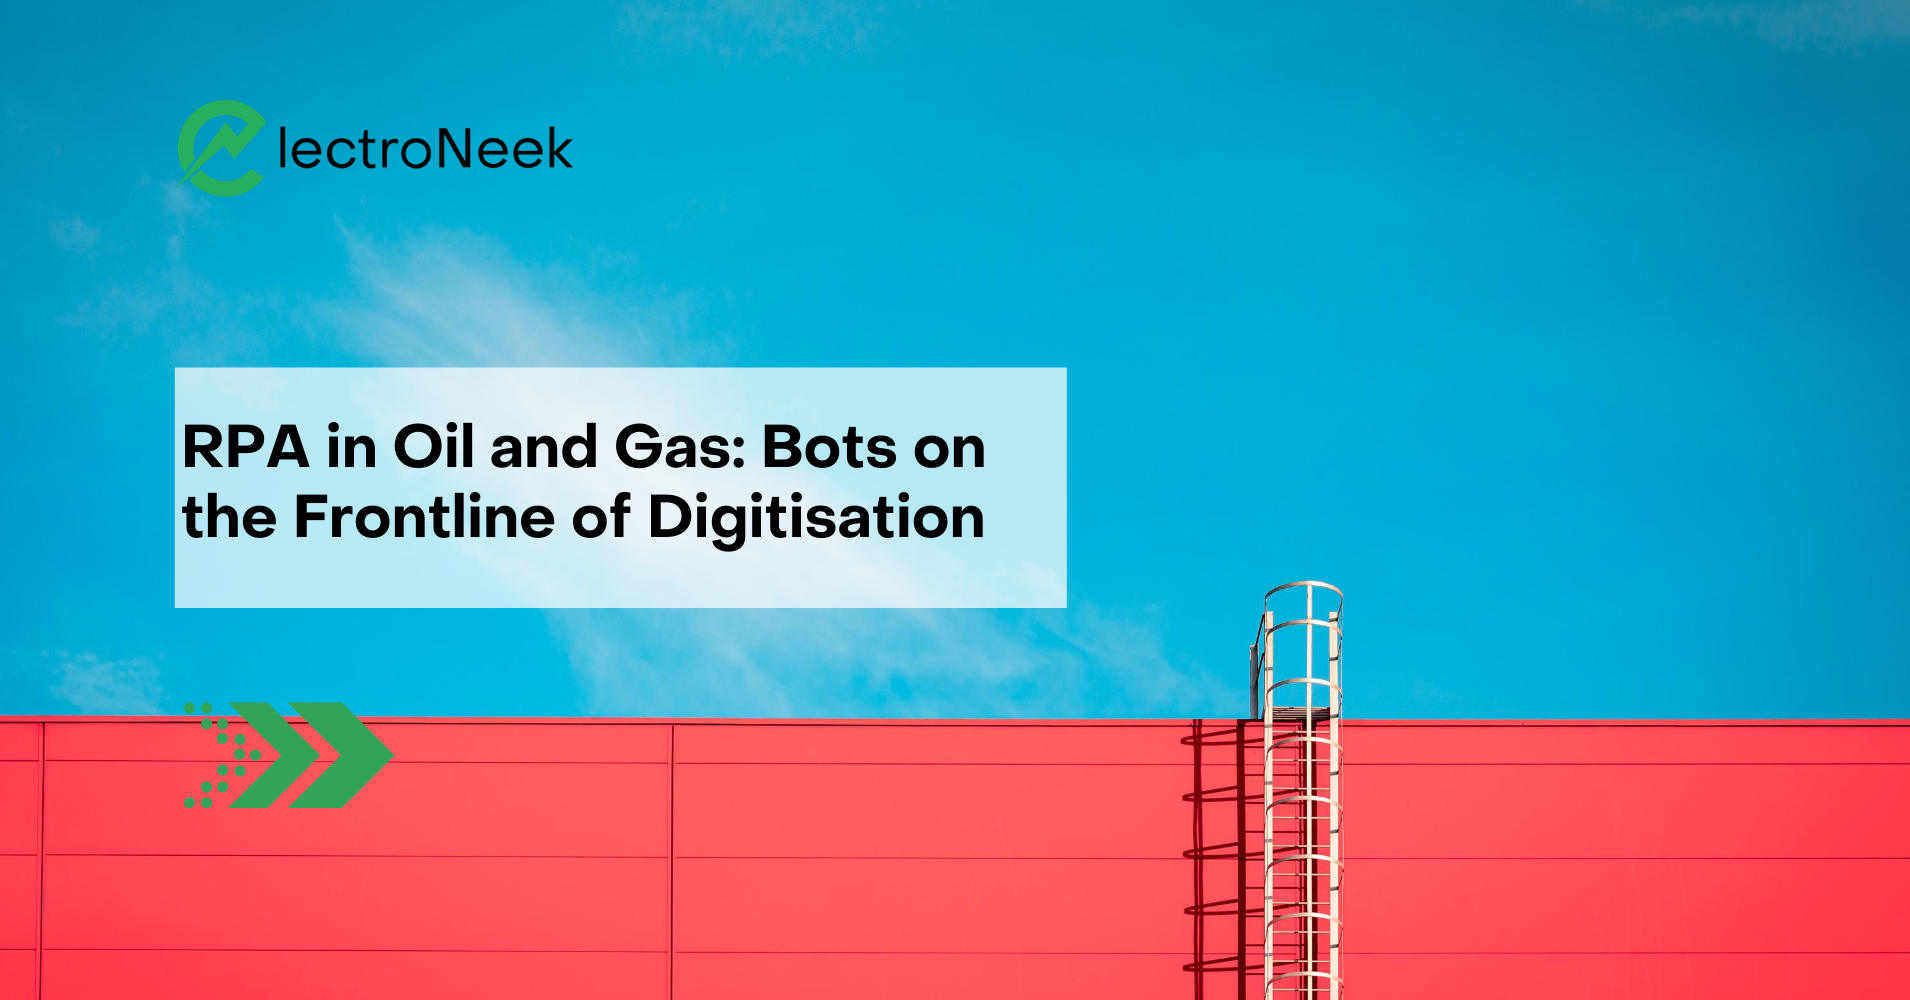 RPA in Oil and Gas: Bots on the Frontline of Digitisation